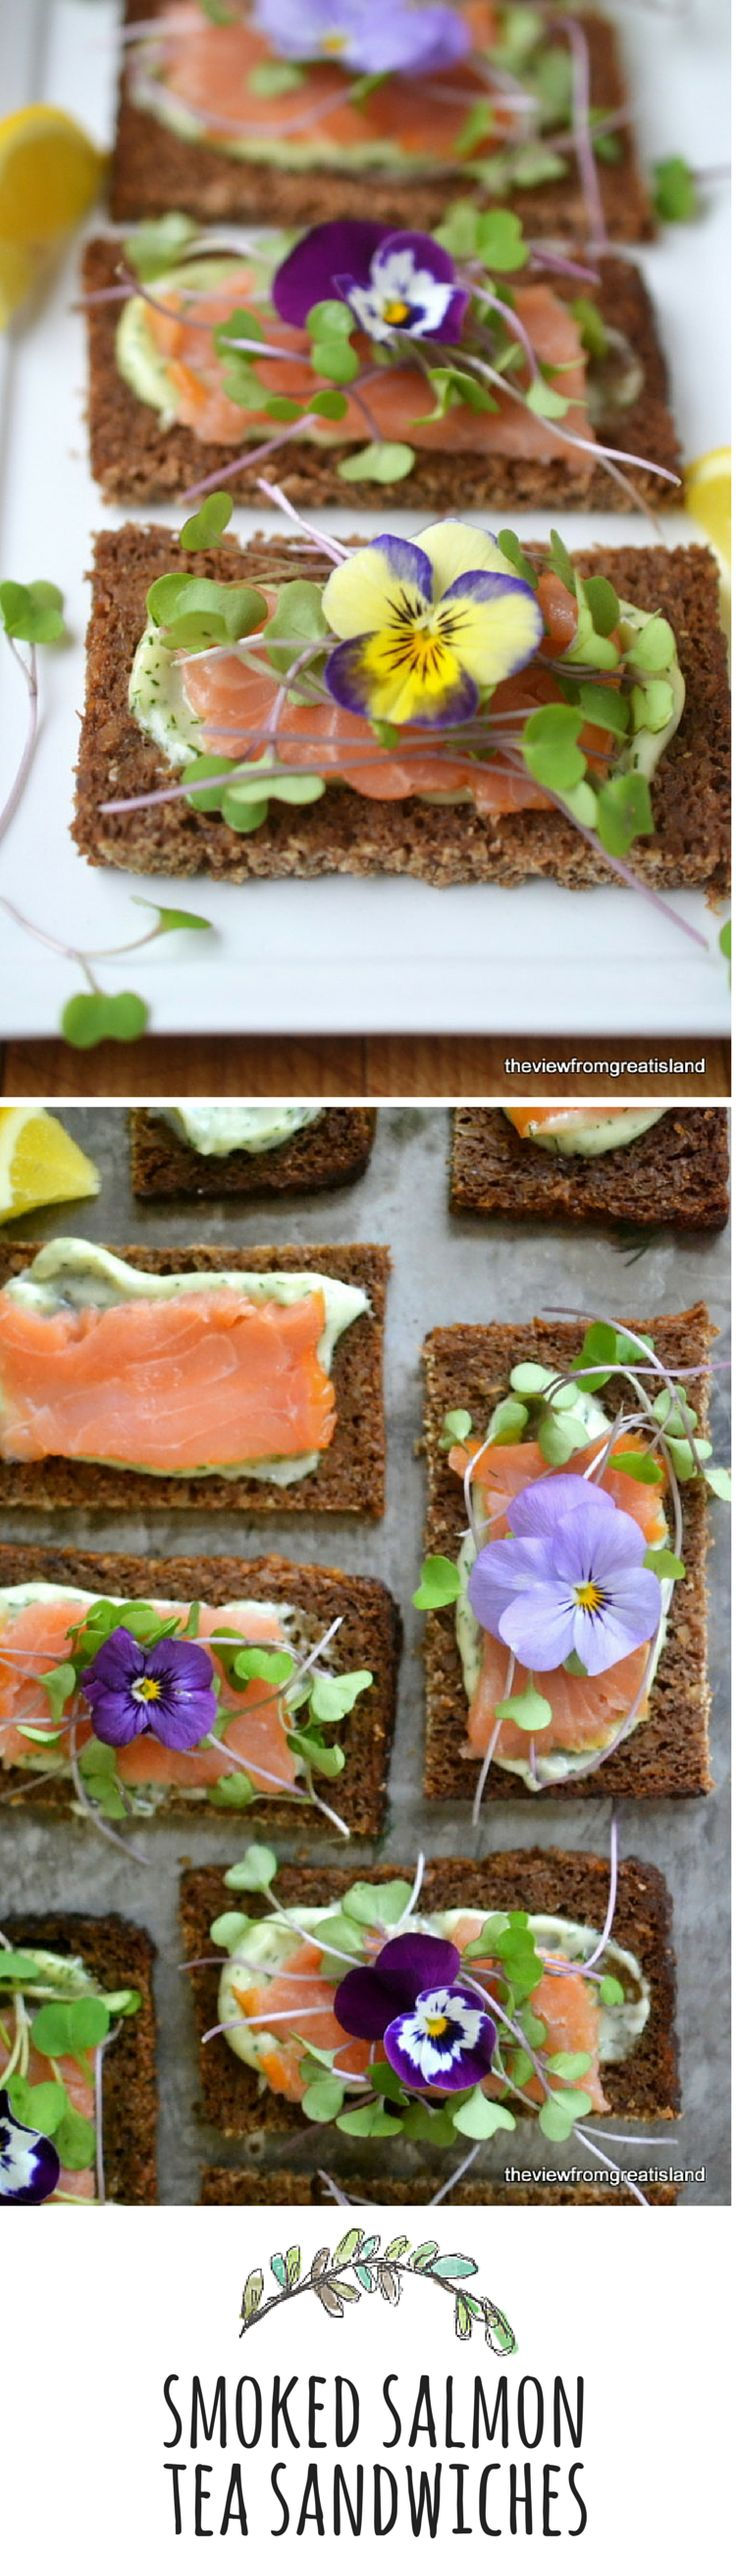 Decorate your sandwiches with edible flowers for a special occasion!